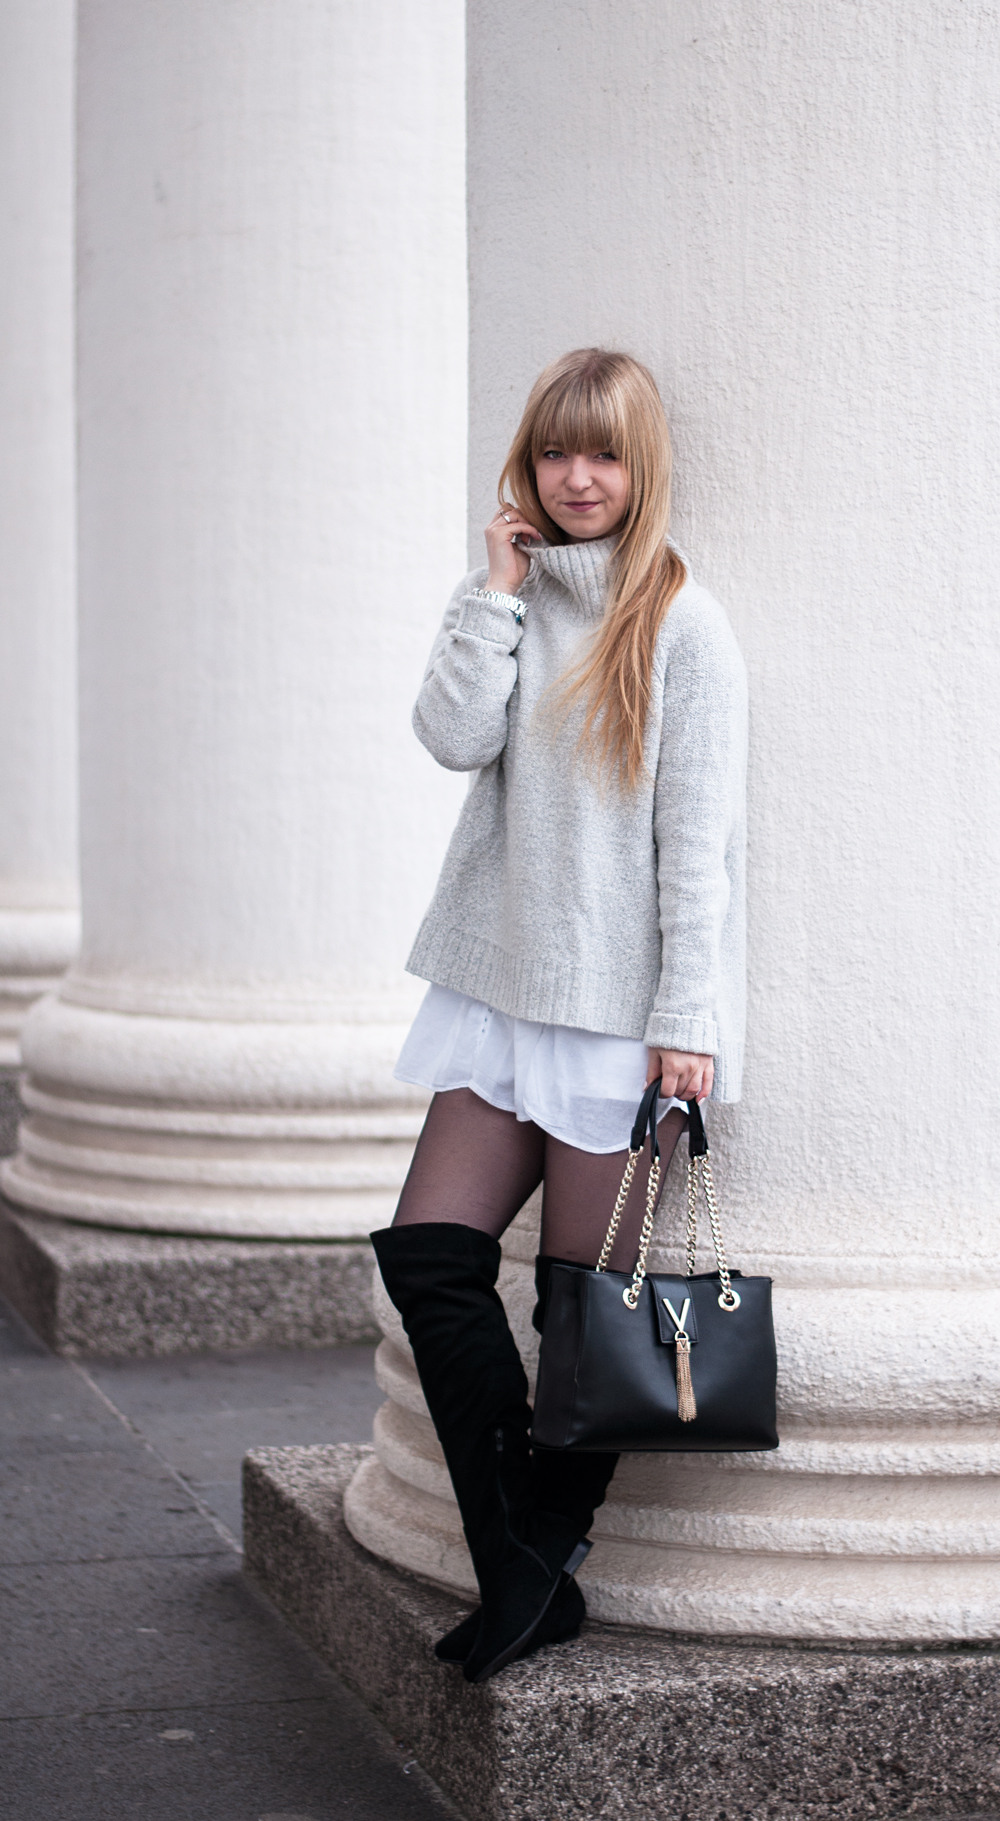 fashion-blogger-modeblogger-duisburg-layering-winter-outfit-look-cozy-turtleneck-sweater-overknee-boots-valentino-bag-2